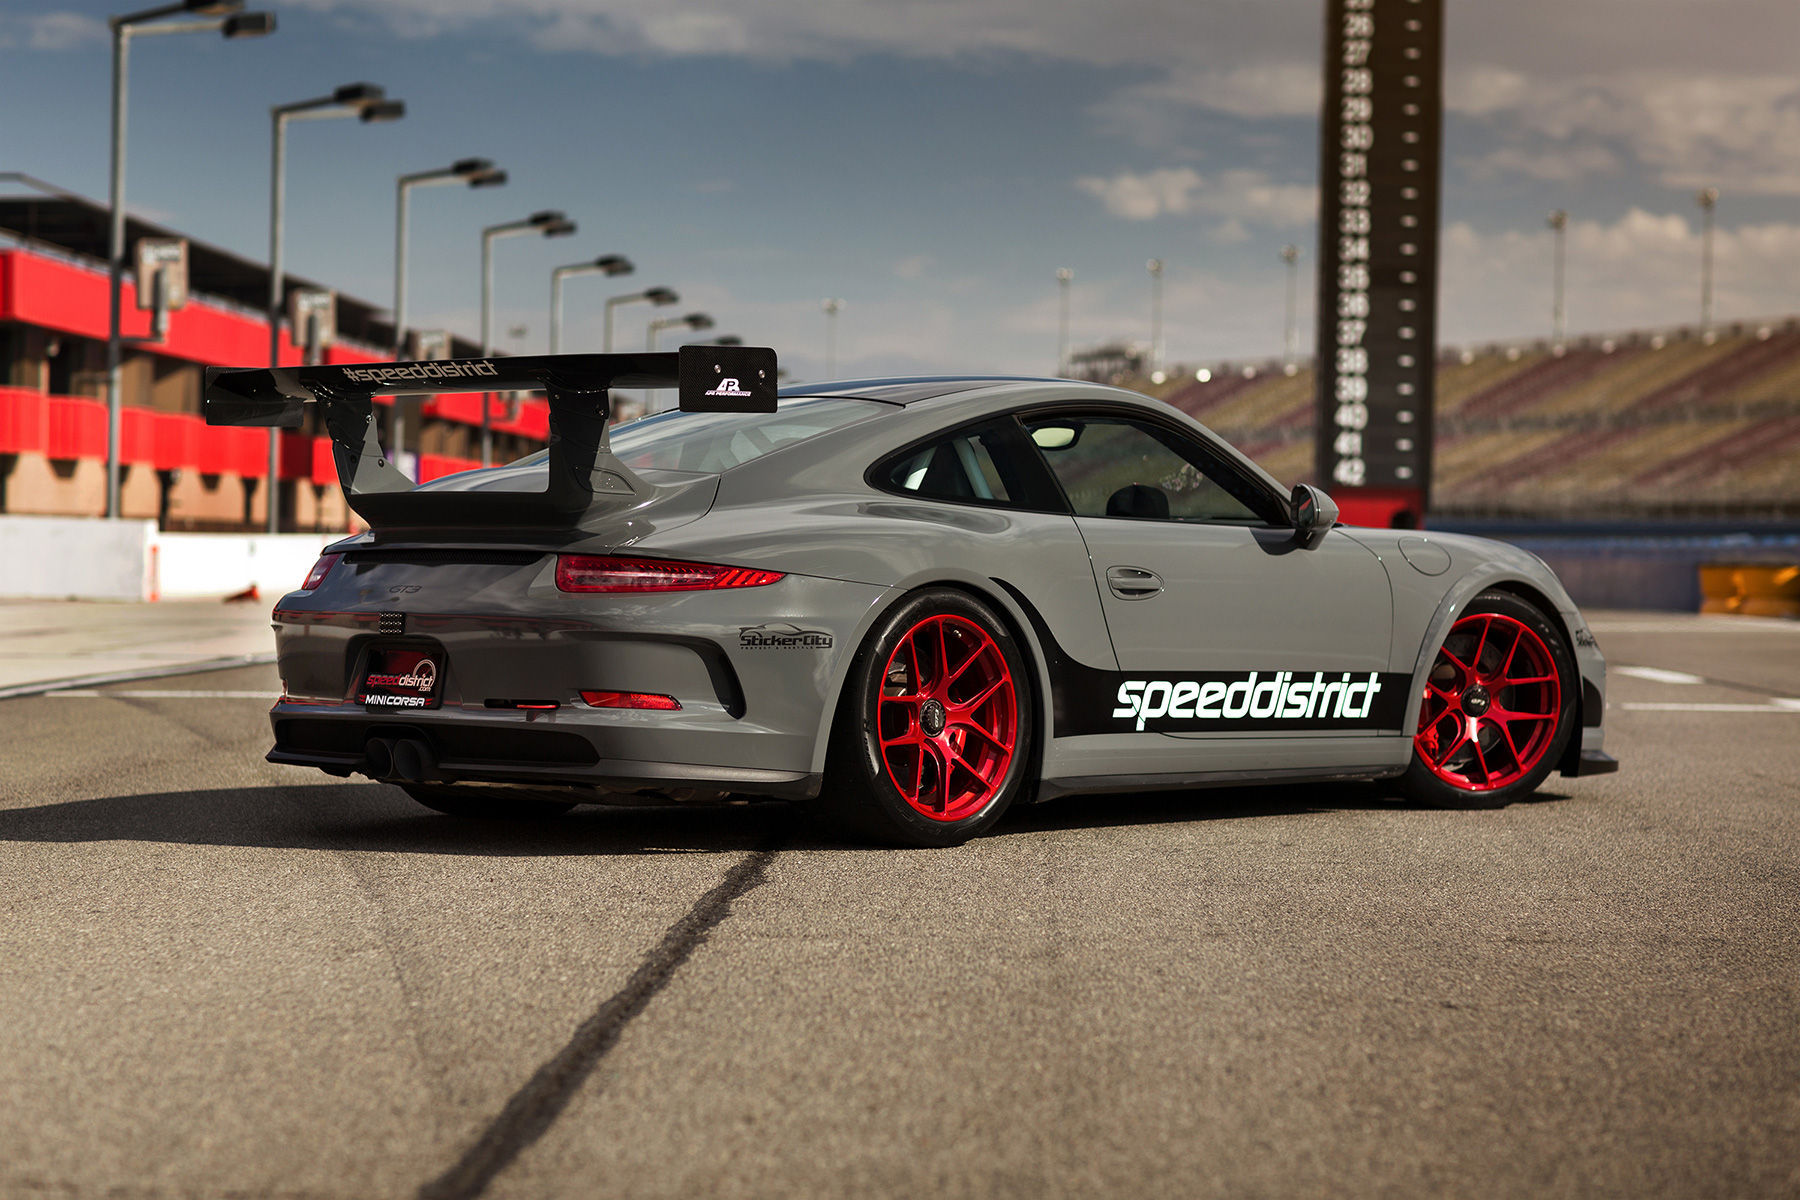 2015 Porsche 911 | Josh Shokri's Speed District 991 Porsche GT3 on Forgeline One Piece Forged Monoblock VX1R Wheels